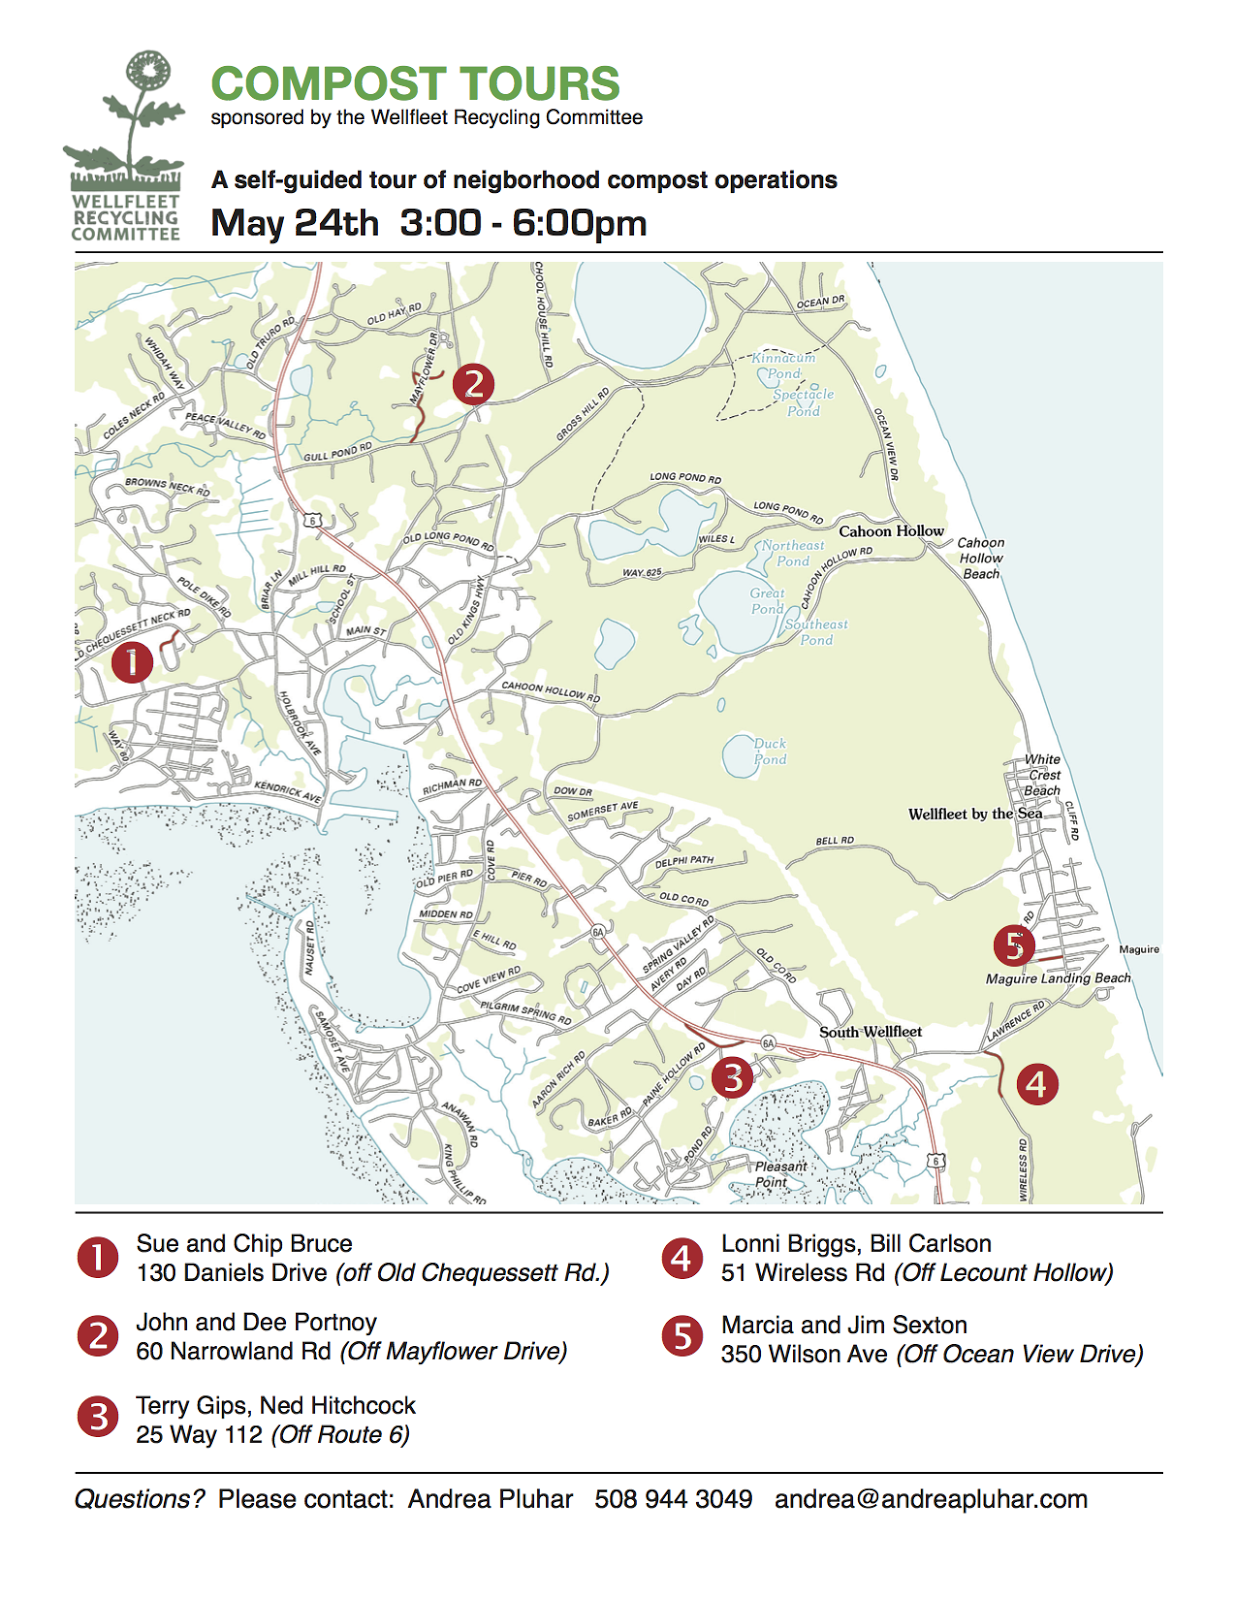 click here for a printable pdf version of the map below